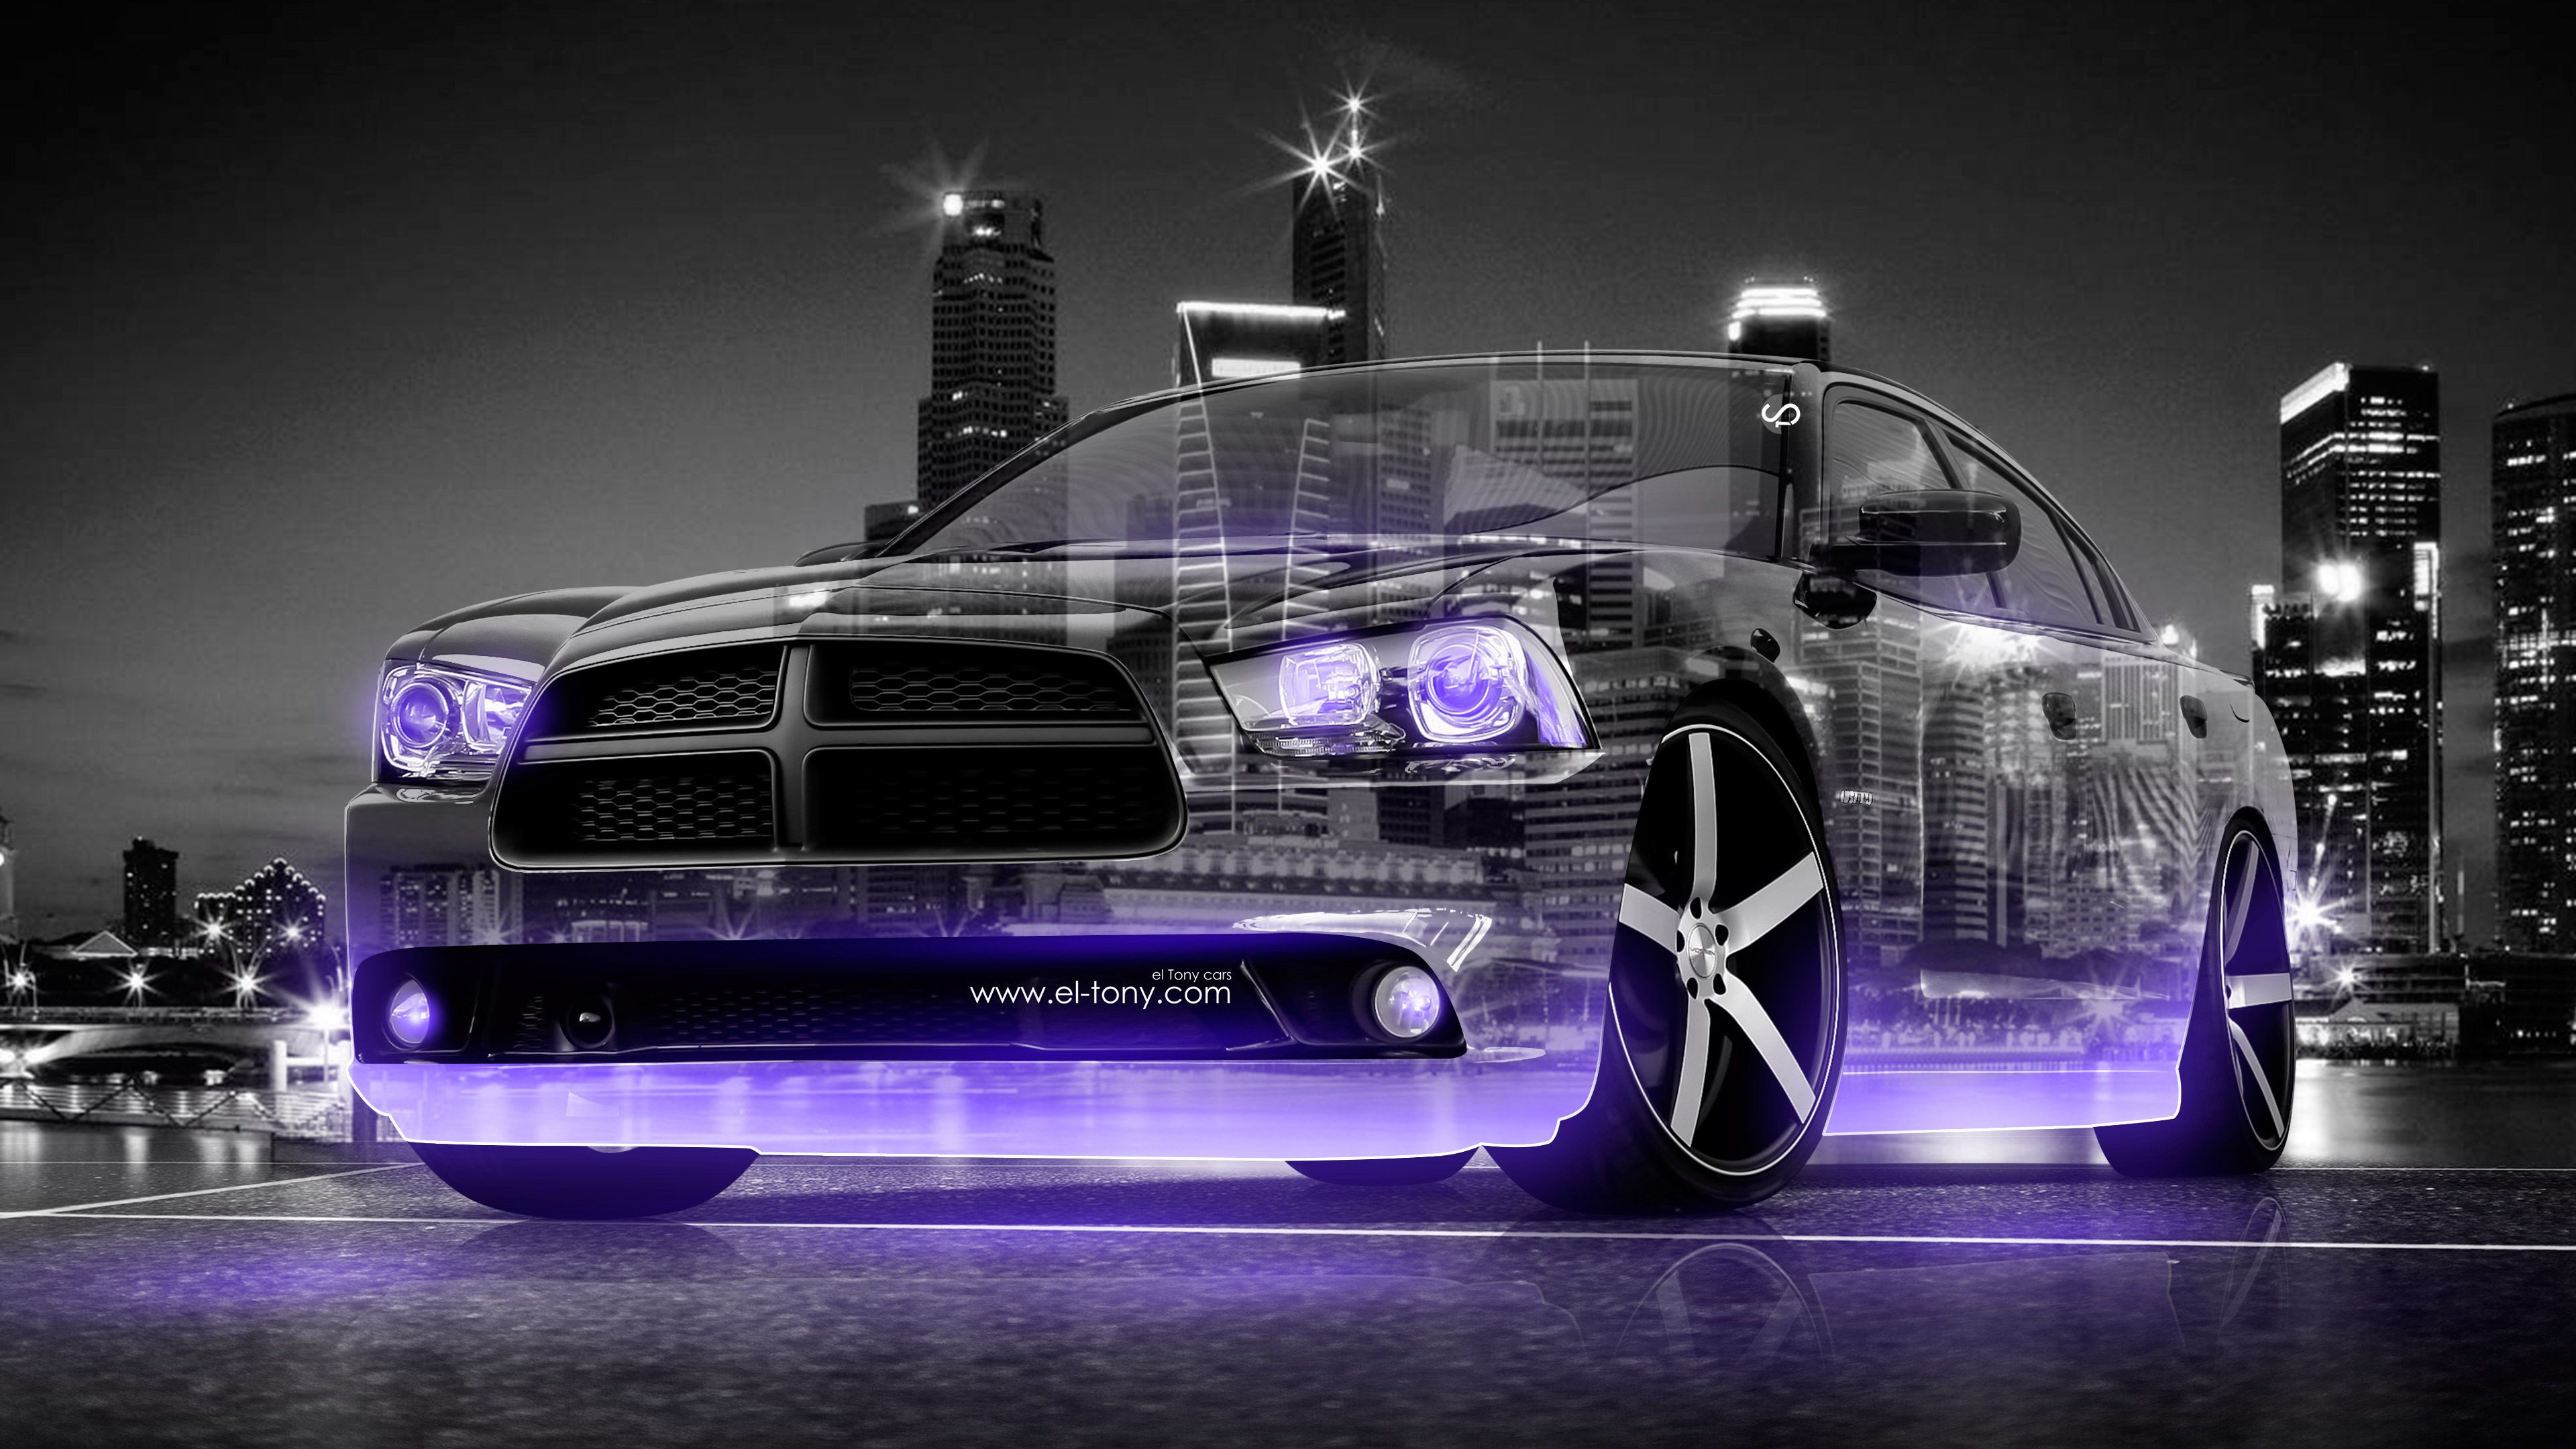 Charming Dodge Charger Daytona Muscle Anime Bleach Aerography City Car 2015 Green Neon Effects 4K Wallpapers Design By Tony Kokhan Www.el Tony.com Image  | Pinterest ...